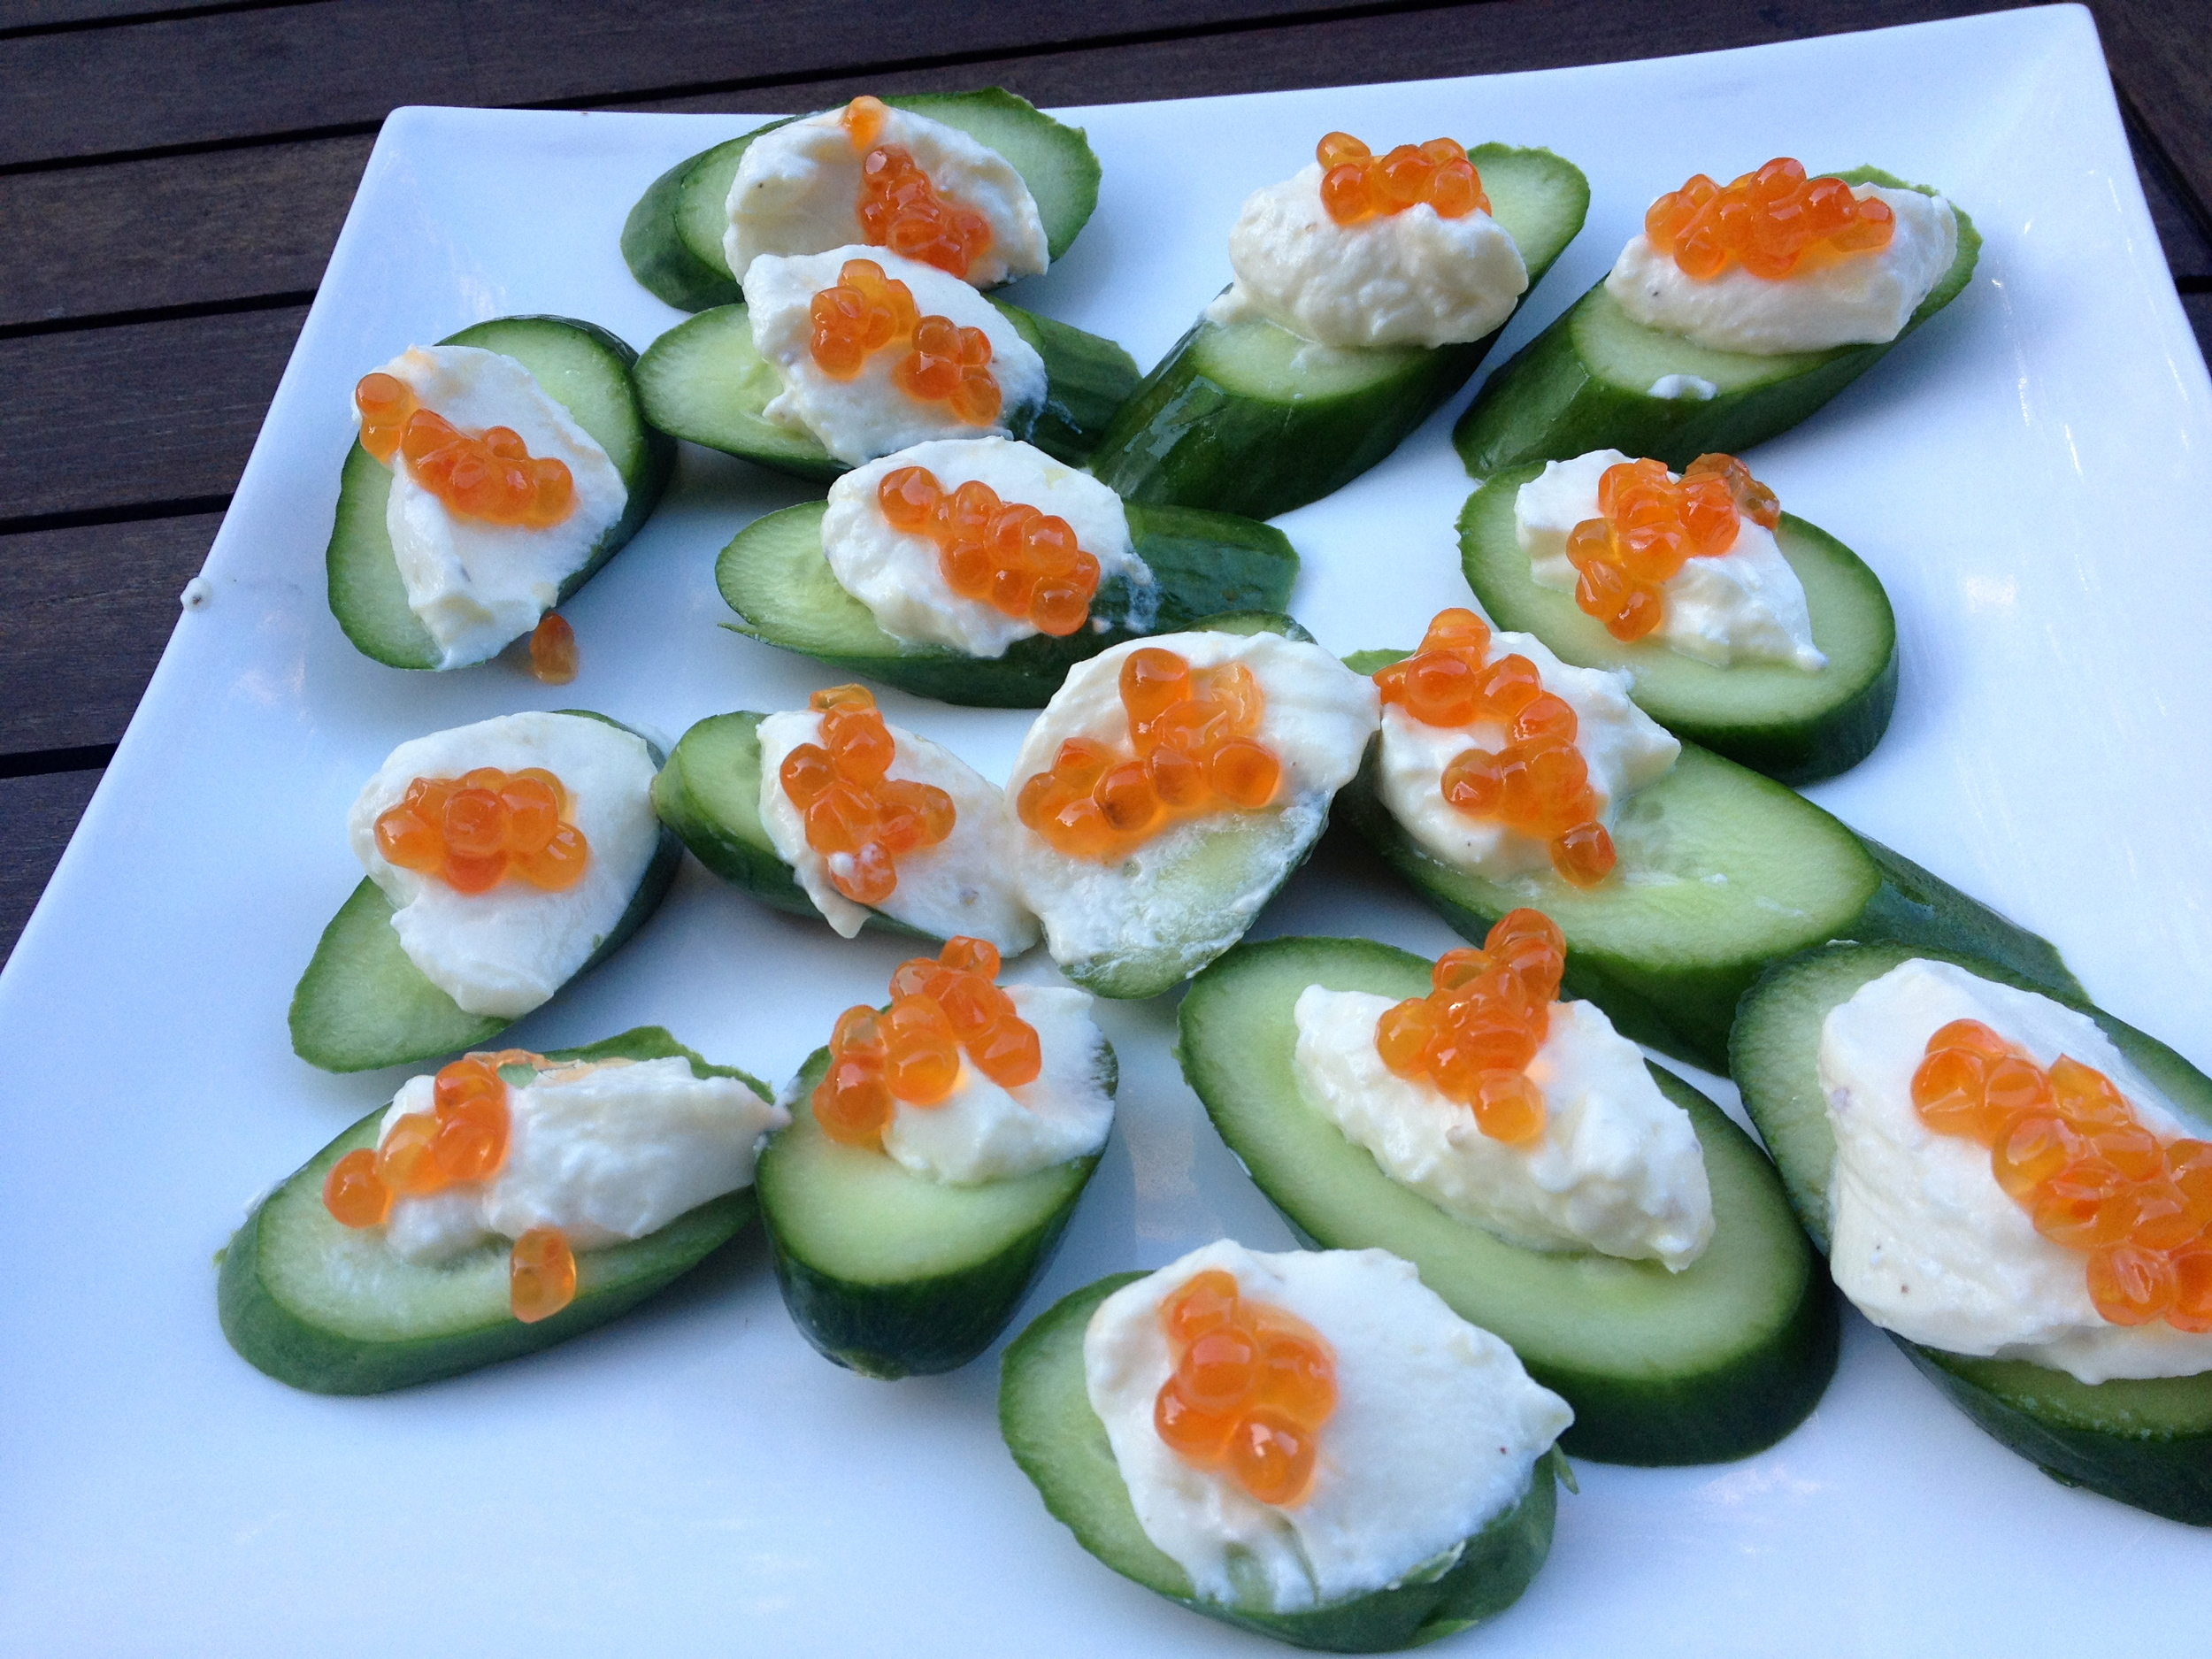 goat curd on cucumber slices with salmon roe